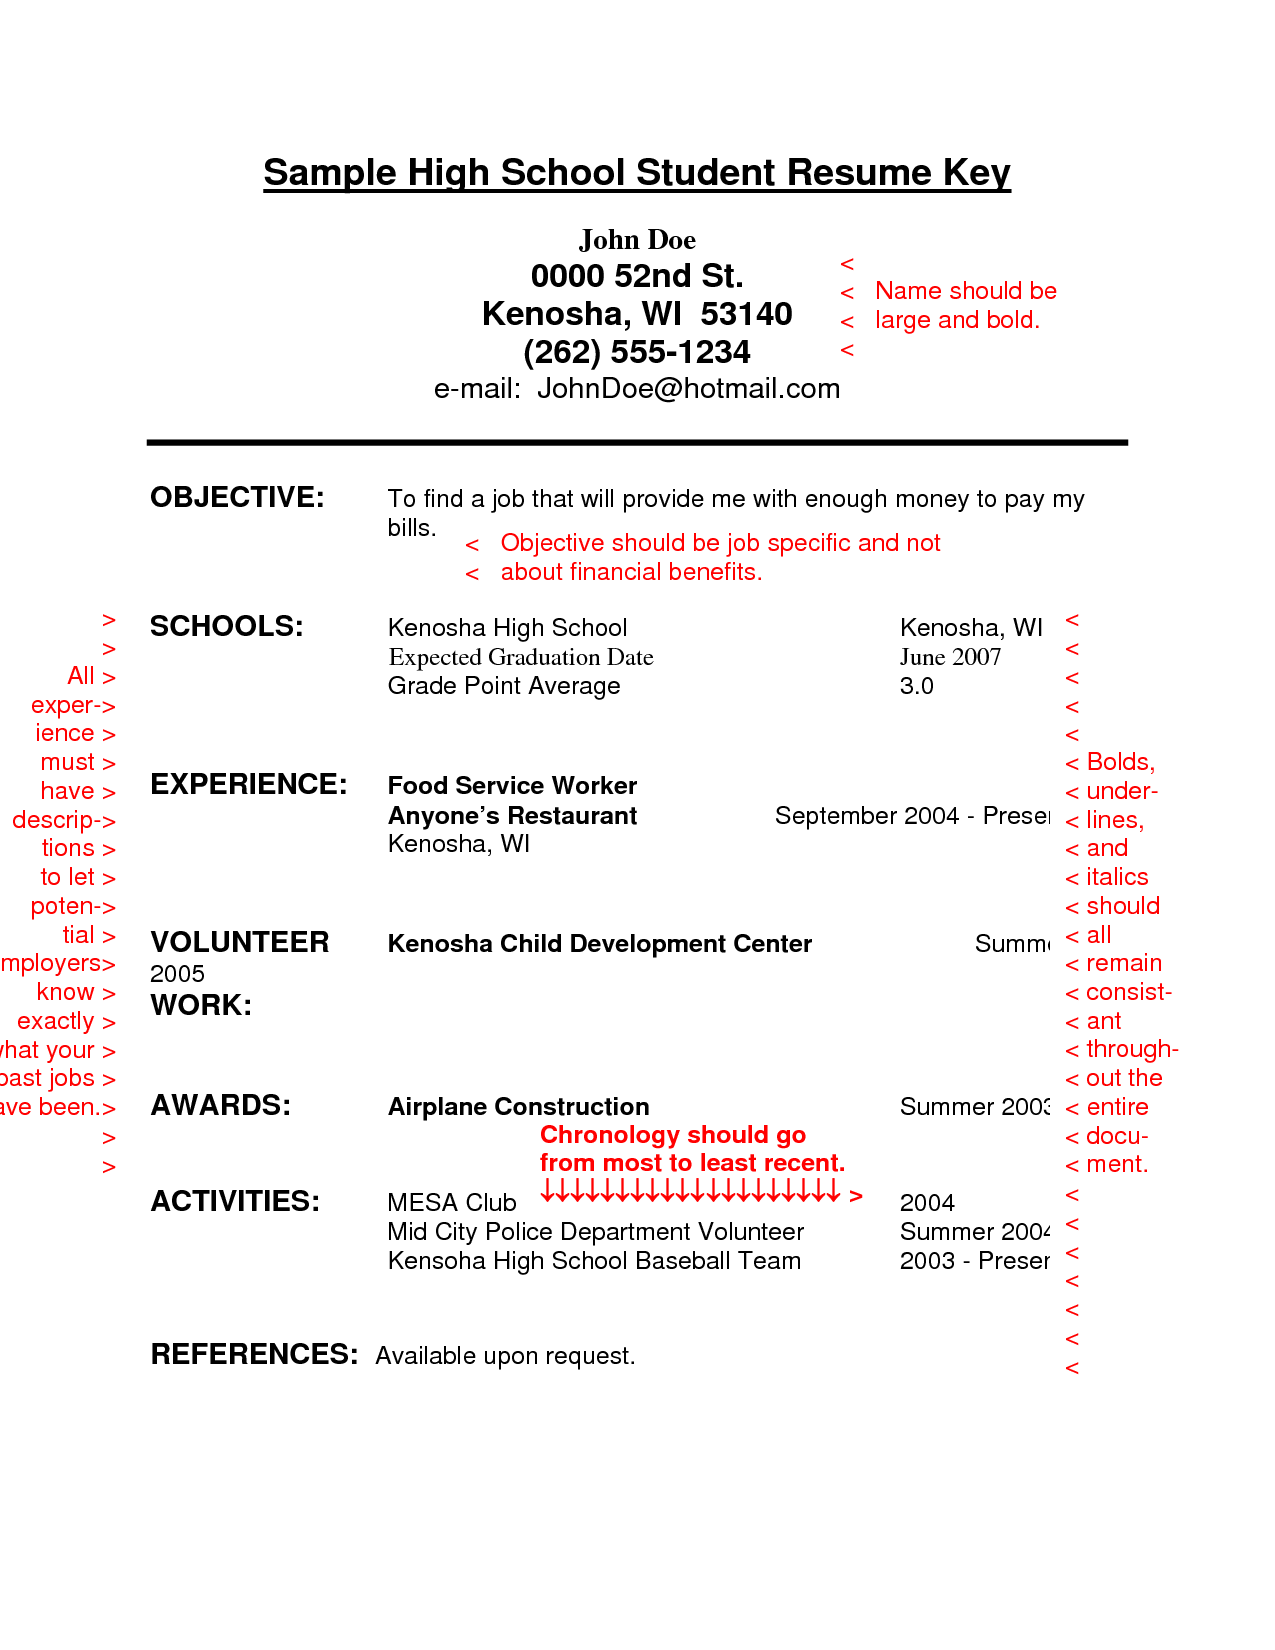 resume sample for high school students with no experience httpwww best. Resume Example. Resume CV Cover Letter